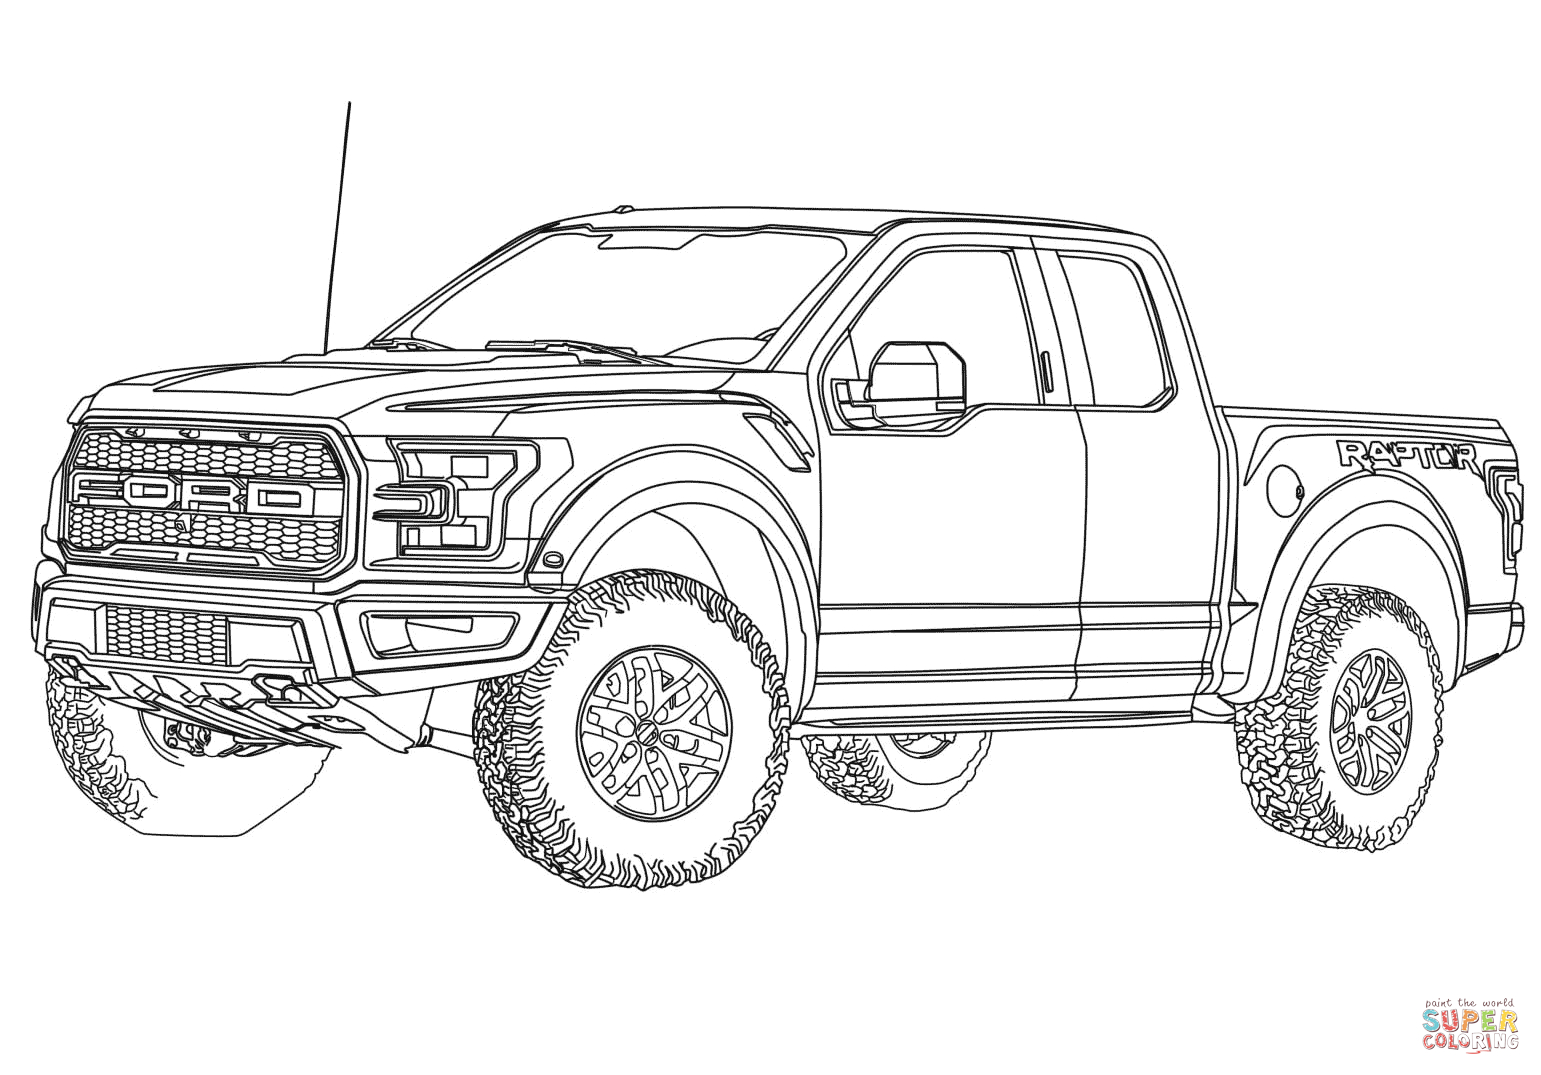 Ford Truck Coloring Pages Download 4o - To print for your project